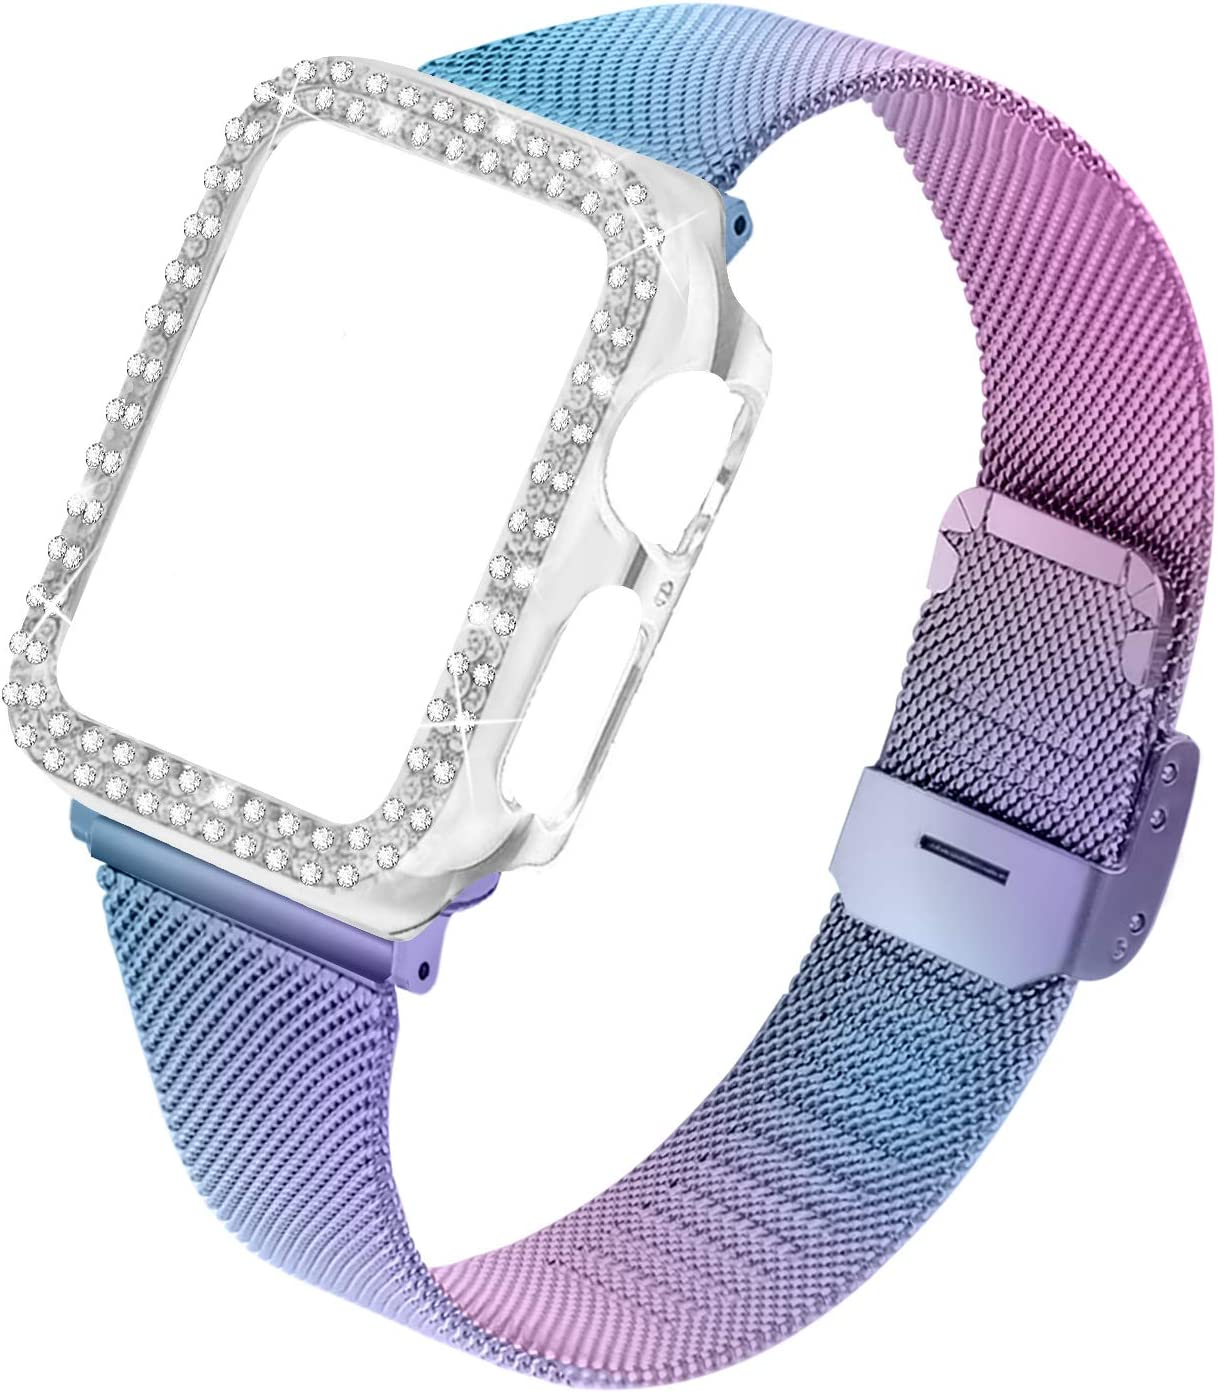 Joyozy Stainless Steel Mesh Bands Compatible for Apple Watch 44mm,Women Bling Protective Crystal Diamond Case with Loop Mesh Strap for Apple Watch Series 6/SE/5/4(No Tool Needed) (Colorful, 44MM)